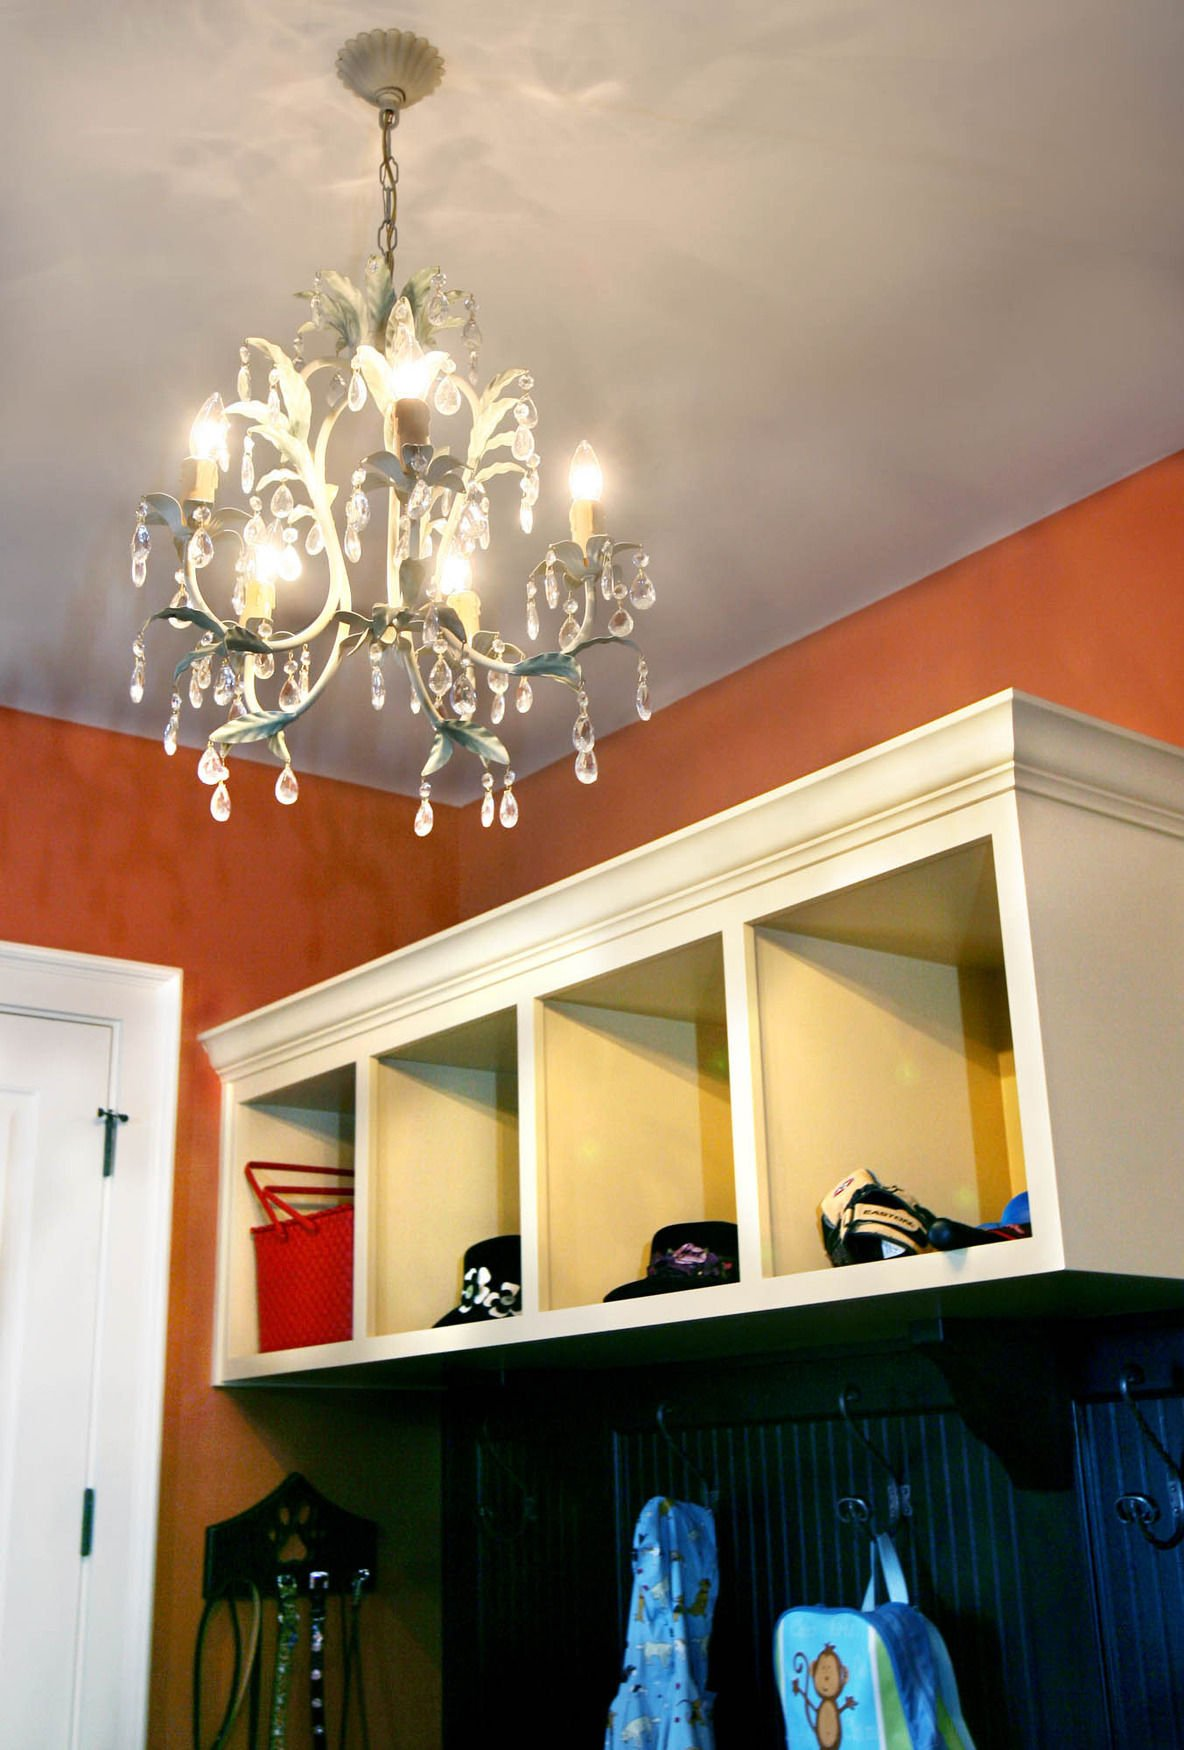 Chandelier lighting: A Southern style travels well | Features ...